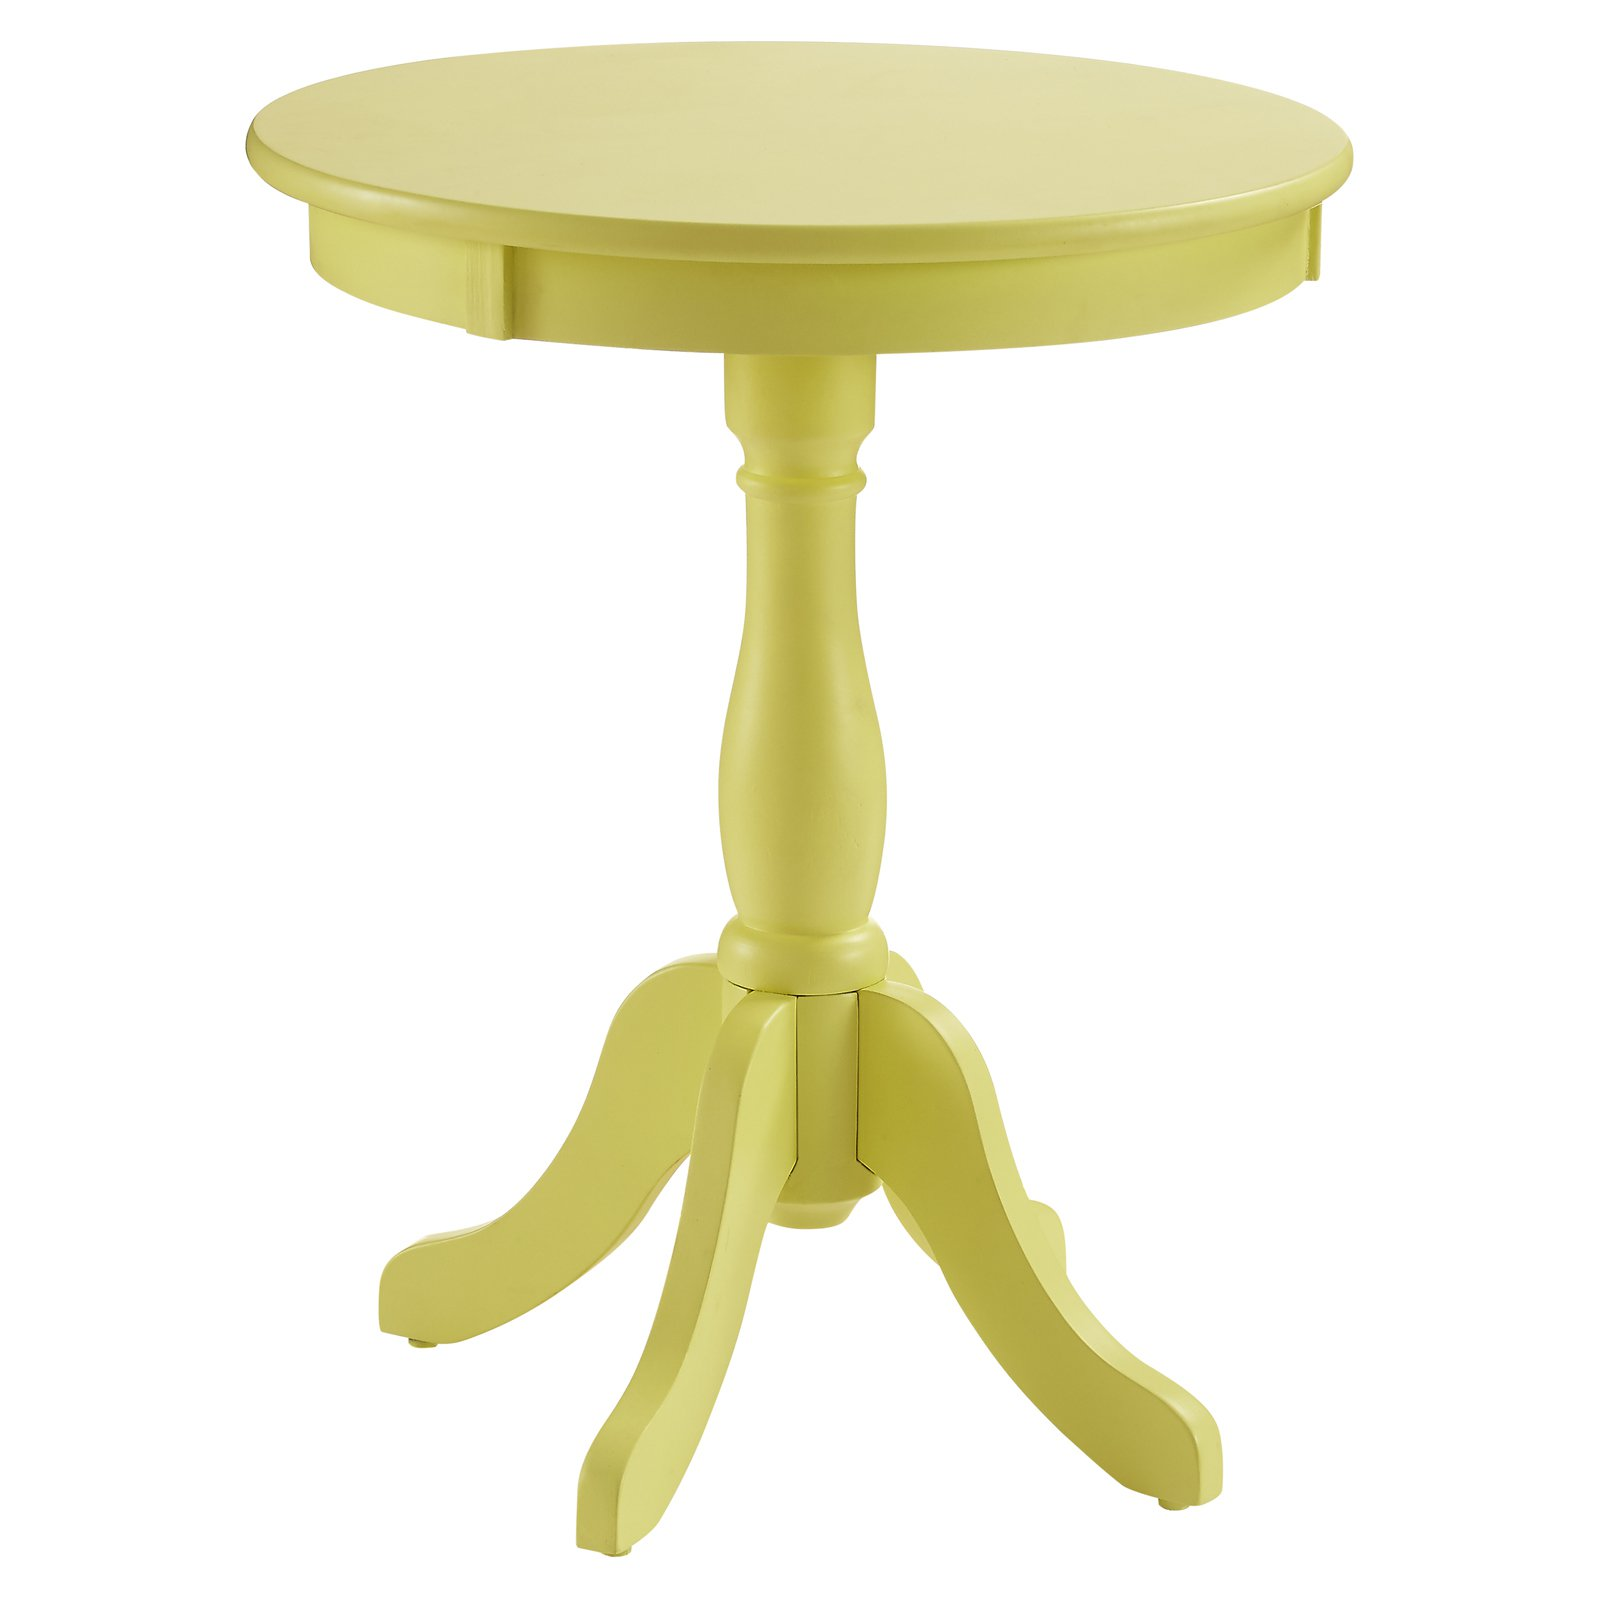 round pedestal side table multiple colors room essentials metal patio accent designer lamp tables antique oak bedside new furniture bar top height pineapple lights small end with